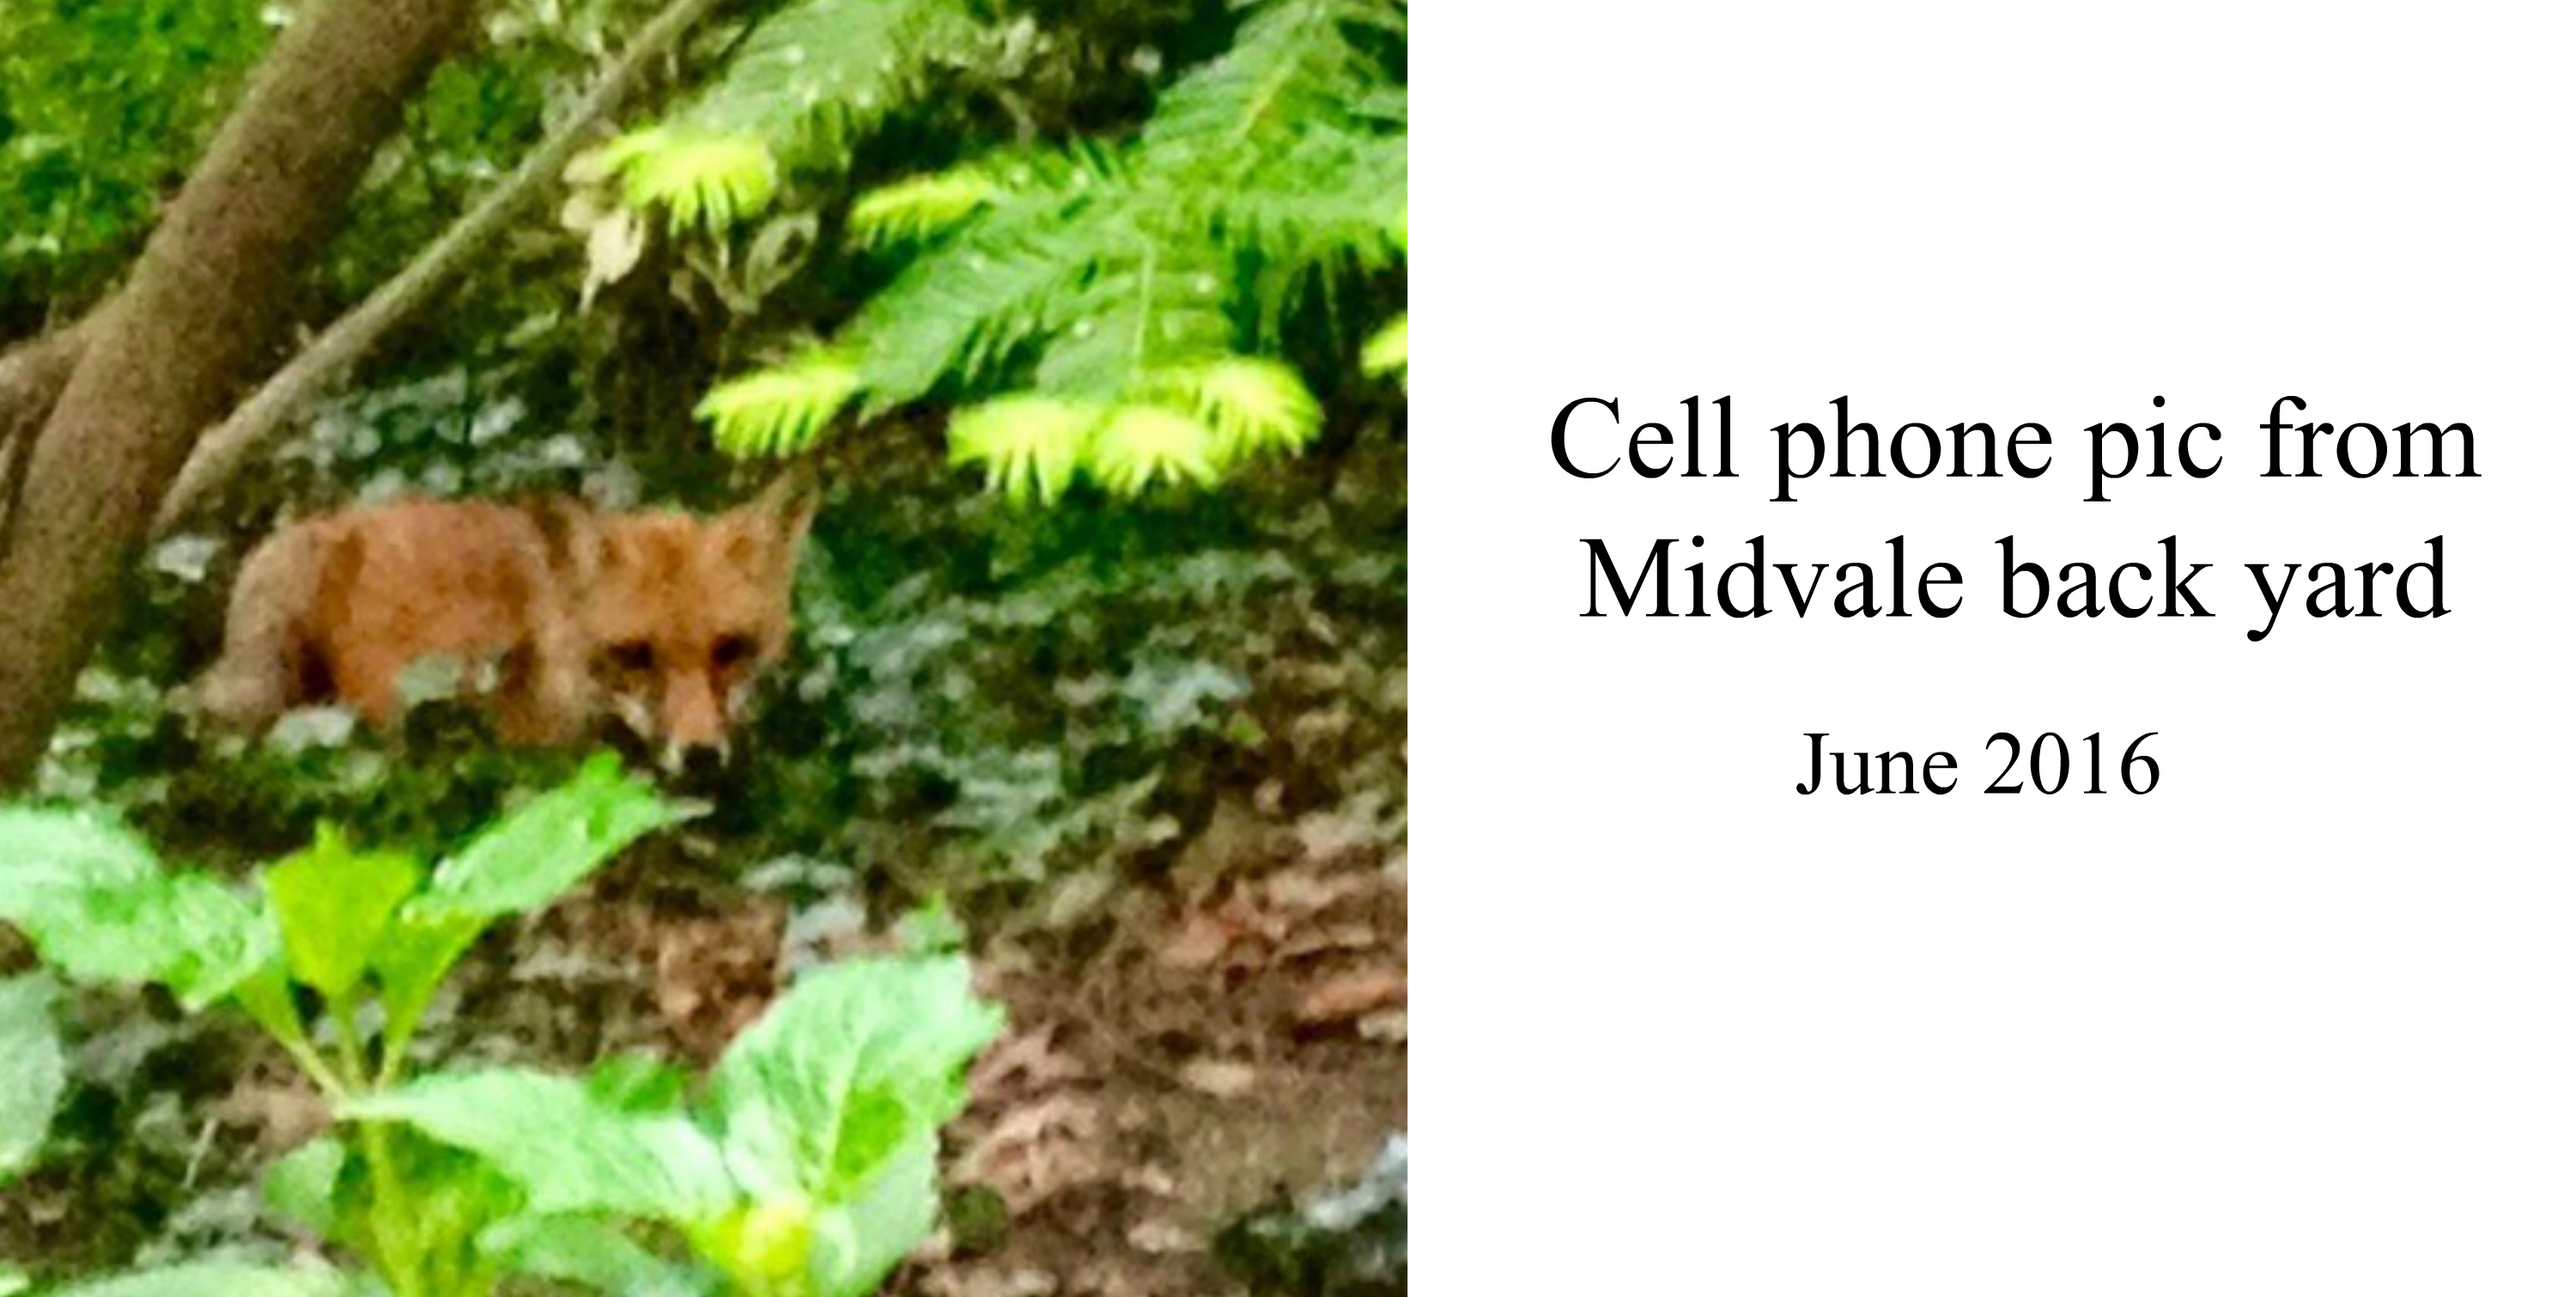 EastFallsLocal cell phone fox midvale yard